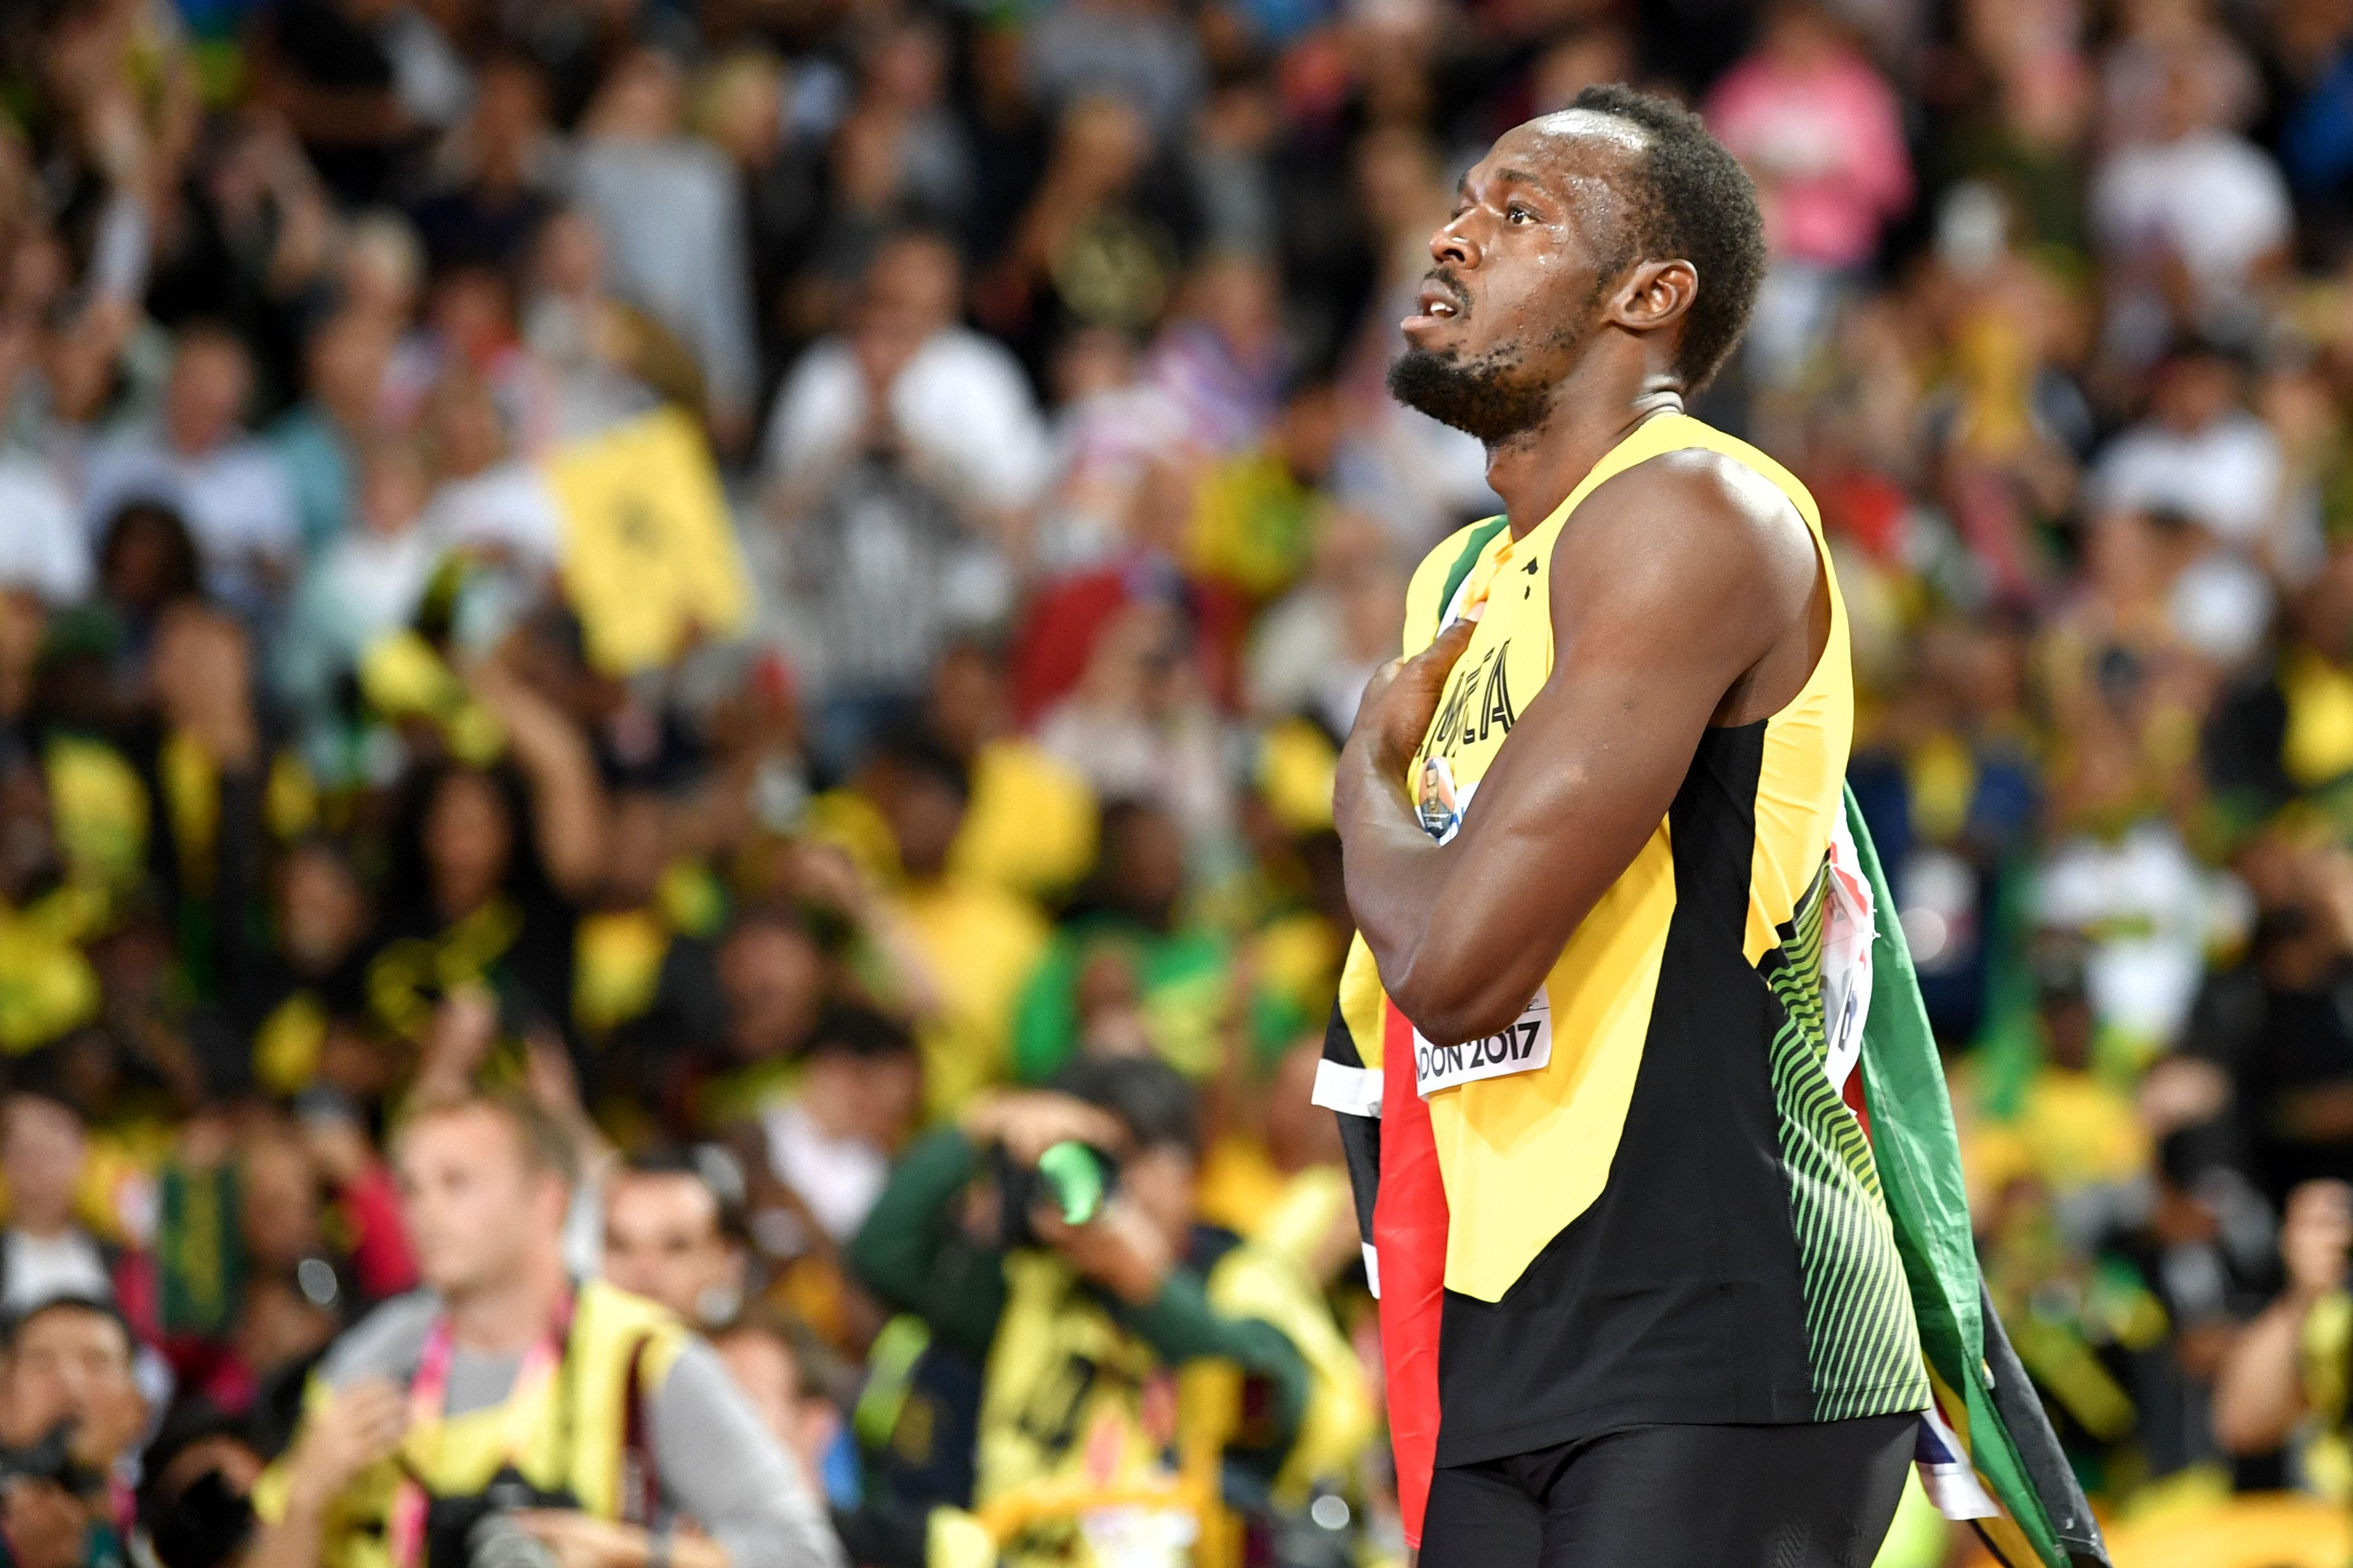 Watch Usain Bolt stunningly lose last 100-meter race